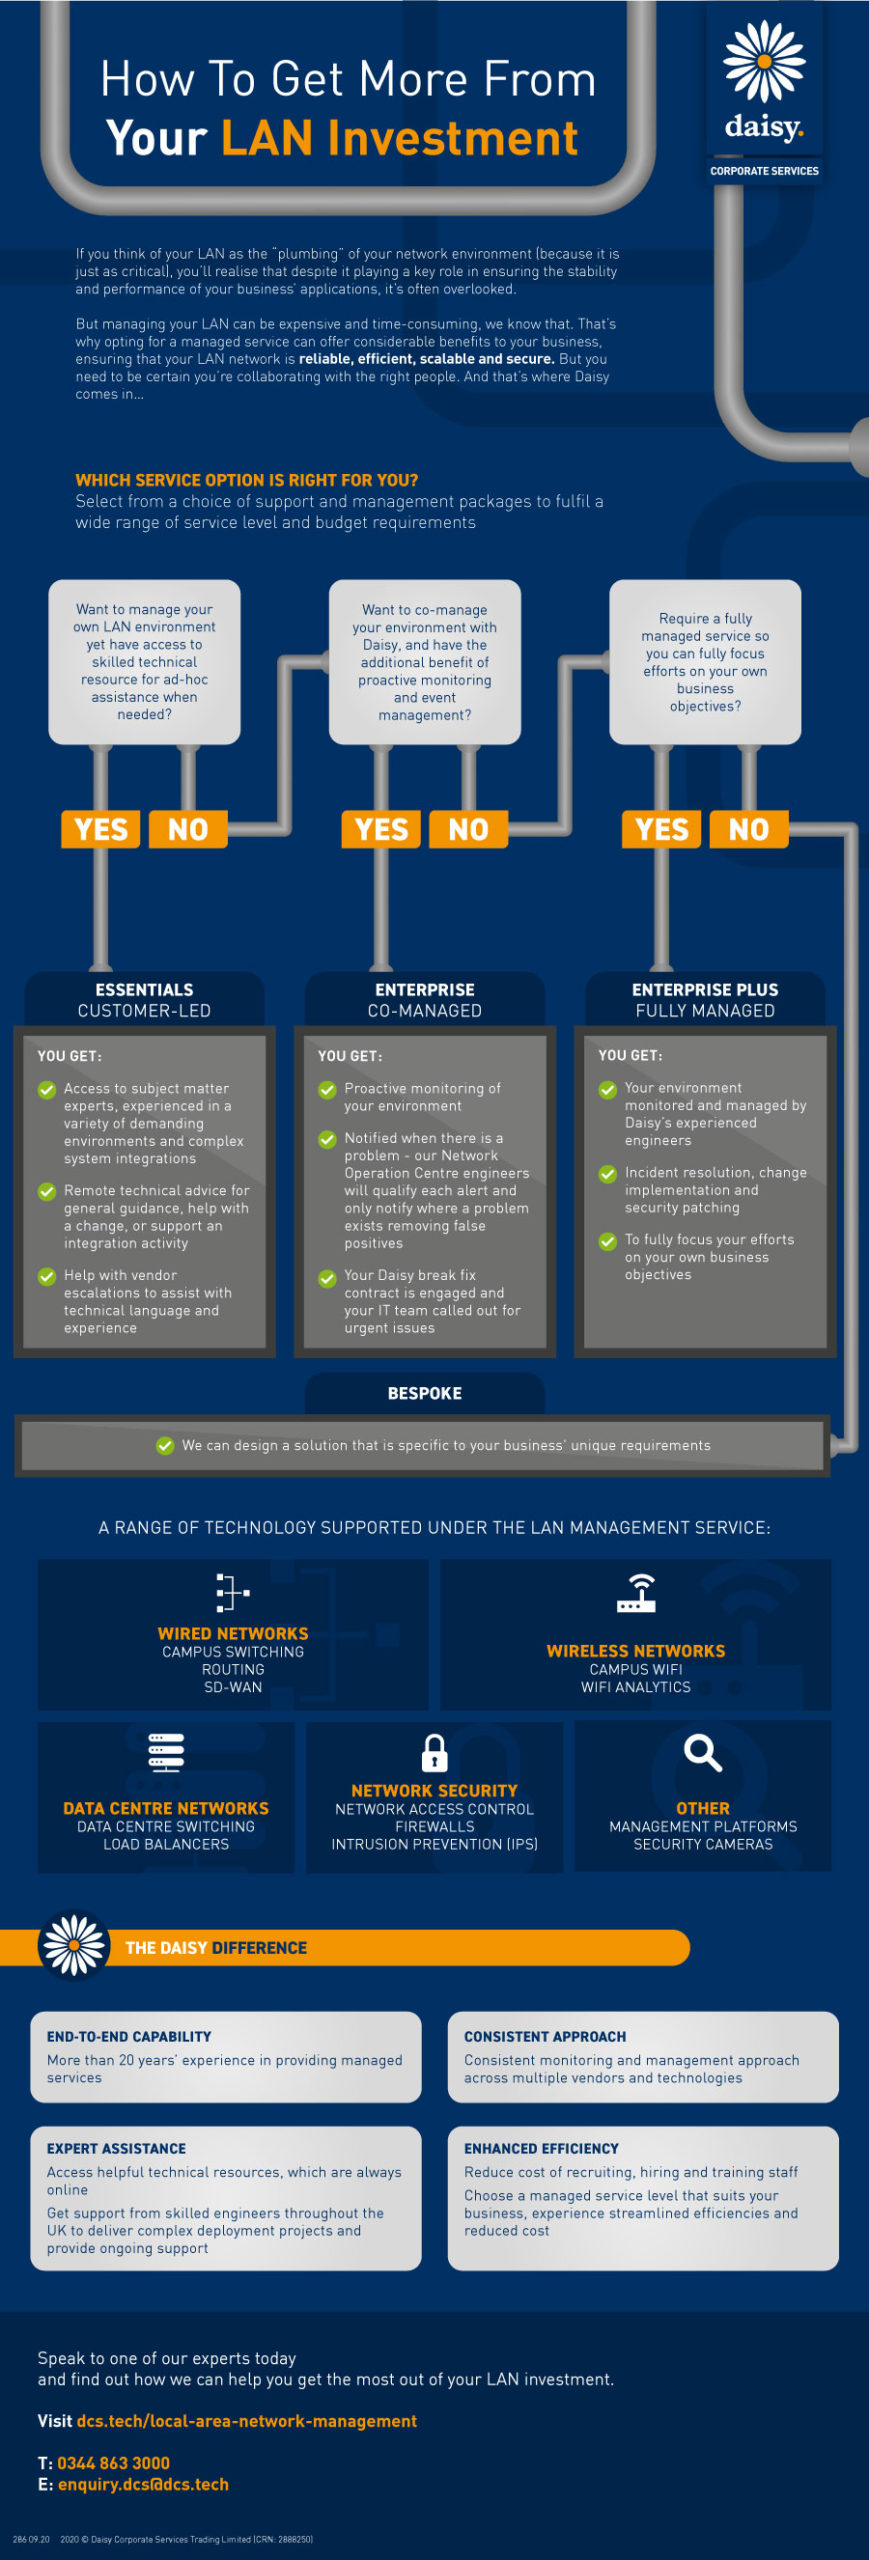 How To Get More From Your LAN Investment [Infographic]